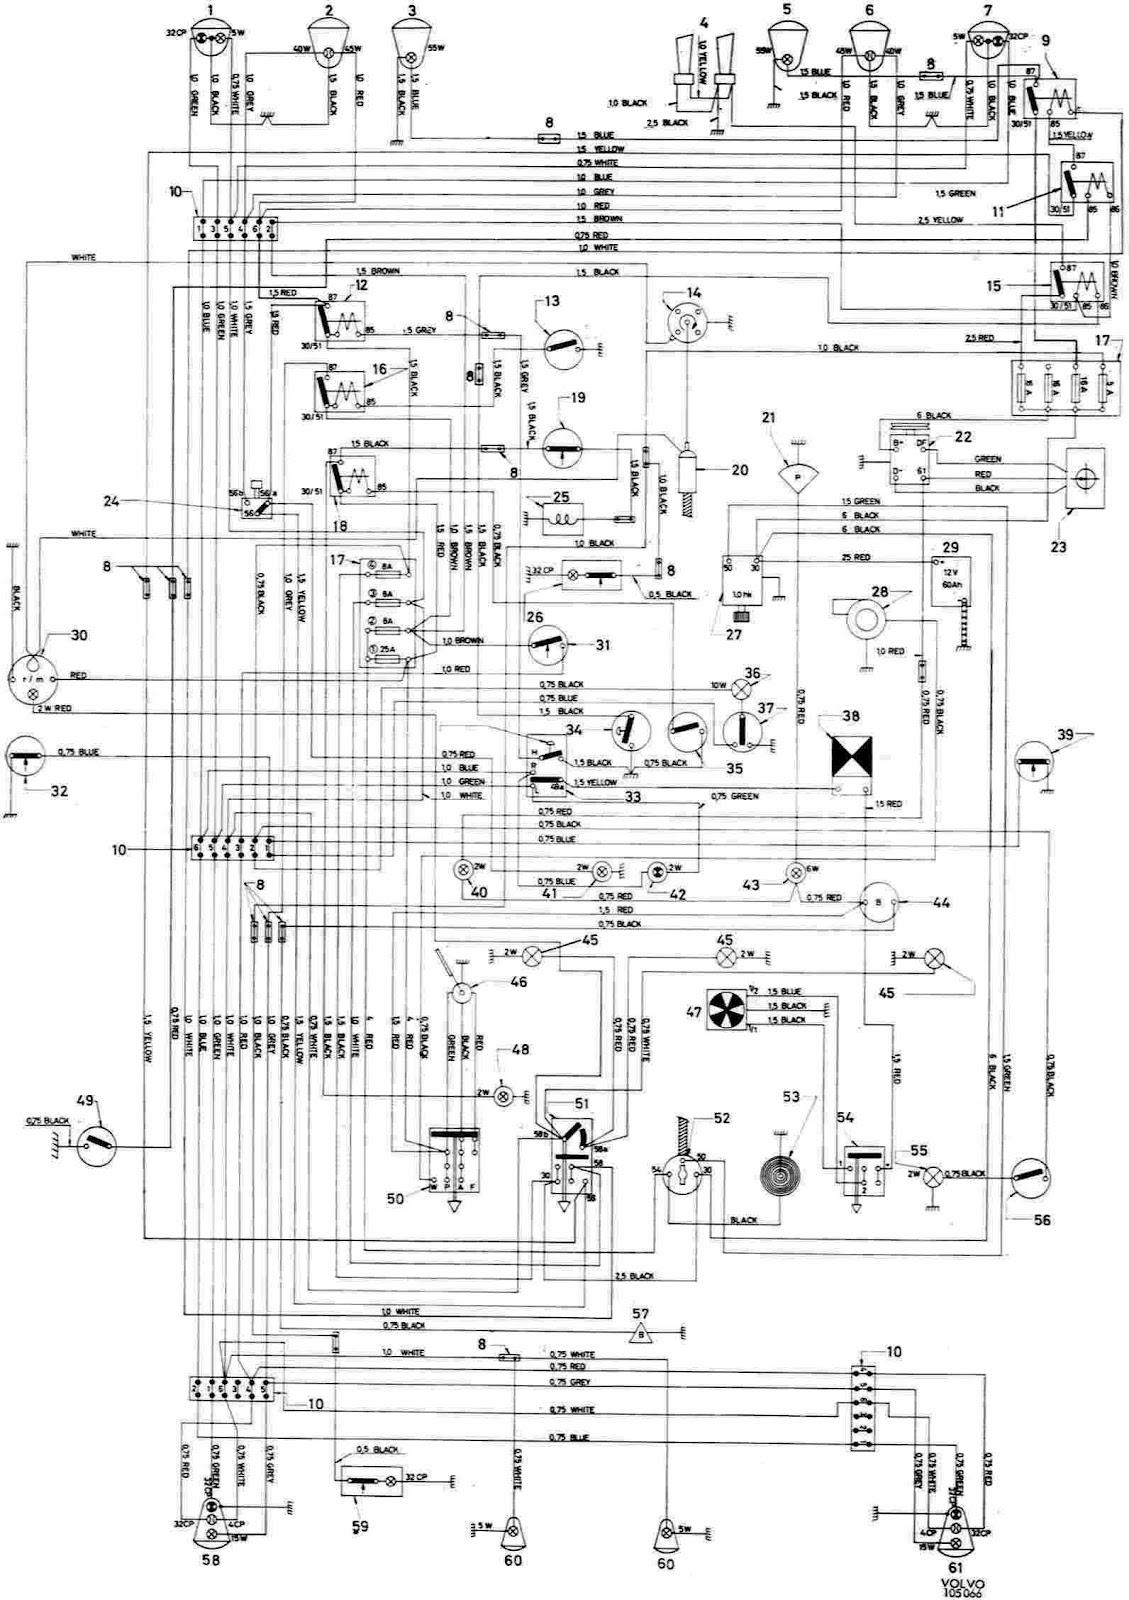 Volvo+123+GT+Complete+Wiring+Diagram 2005 volvo s40 wiring diagram volvo s40 steering diagram \u2022 wiring volvo c70 2001 wiring diagram at bayanpartner.co